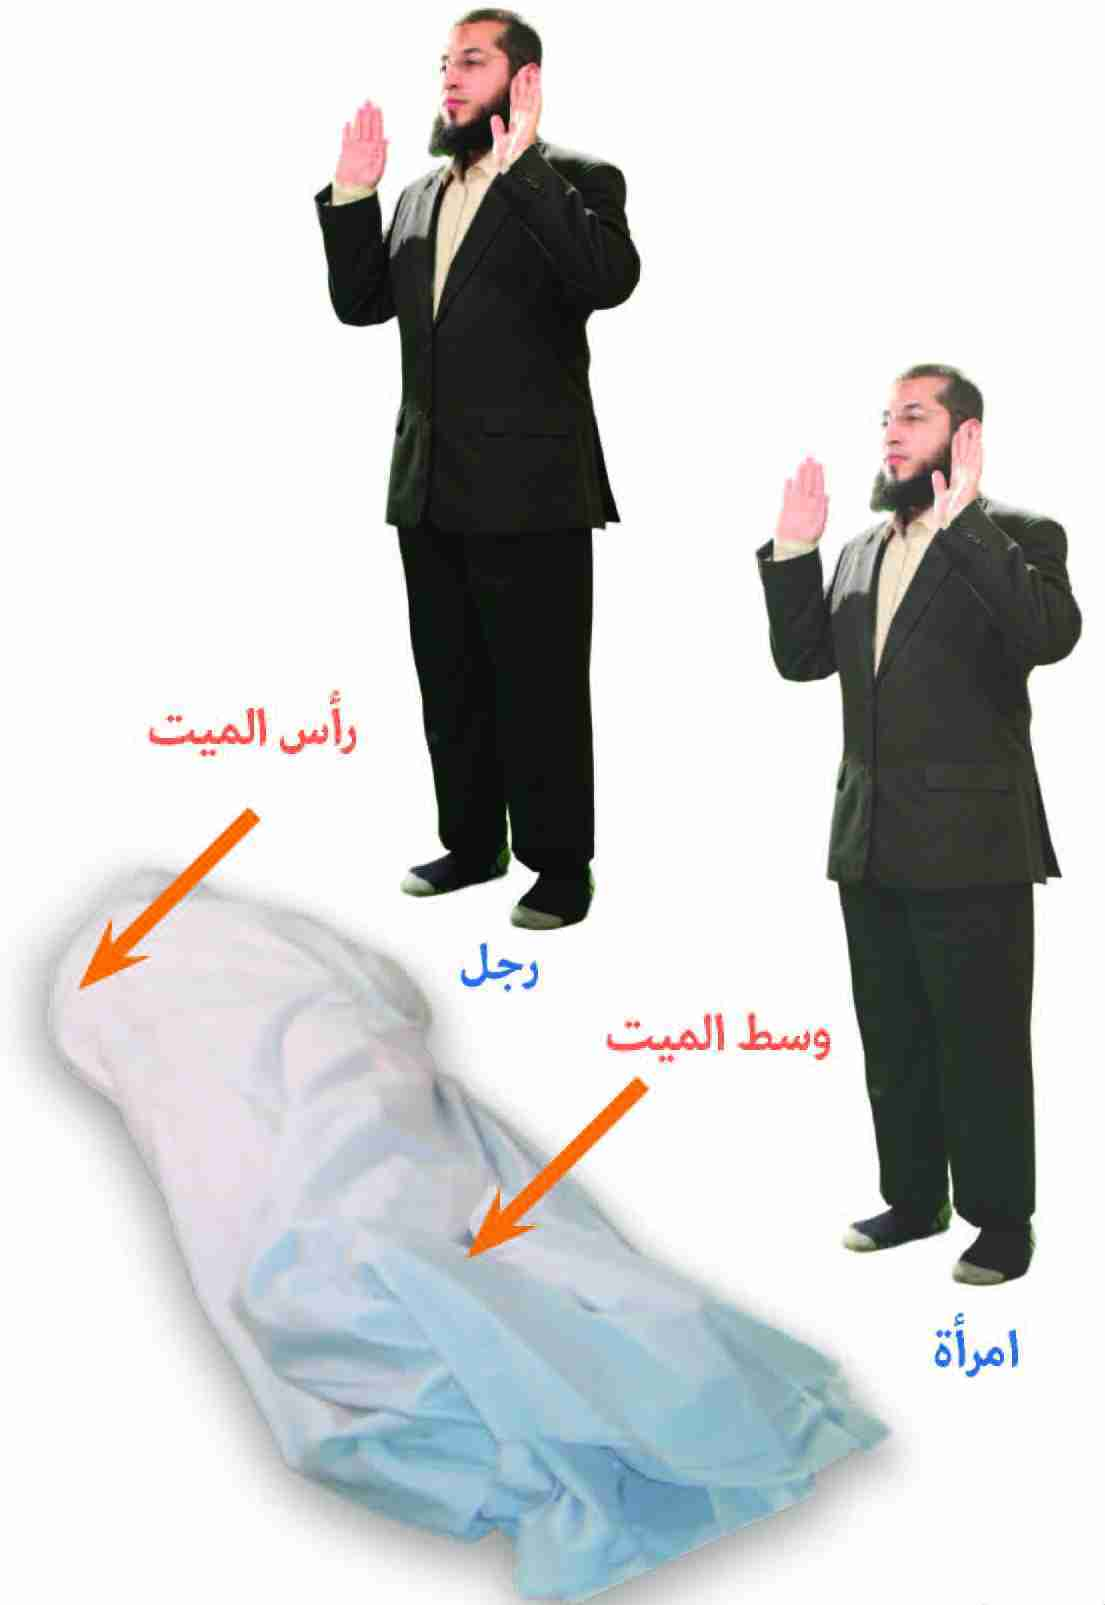 Description of the funeral Salat